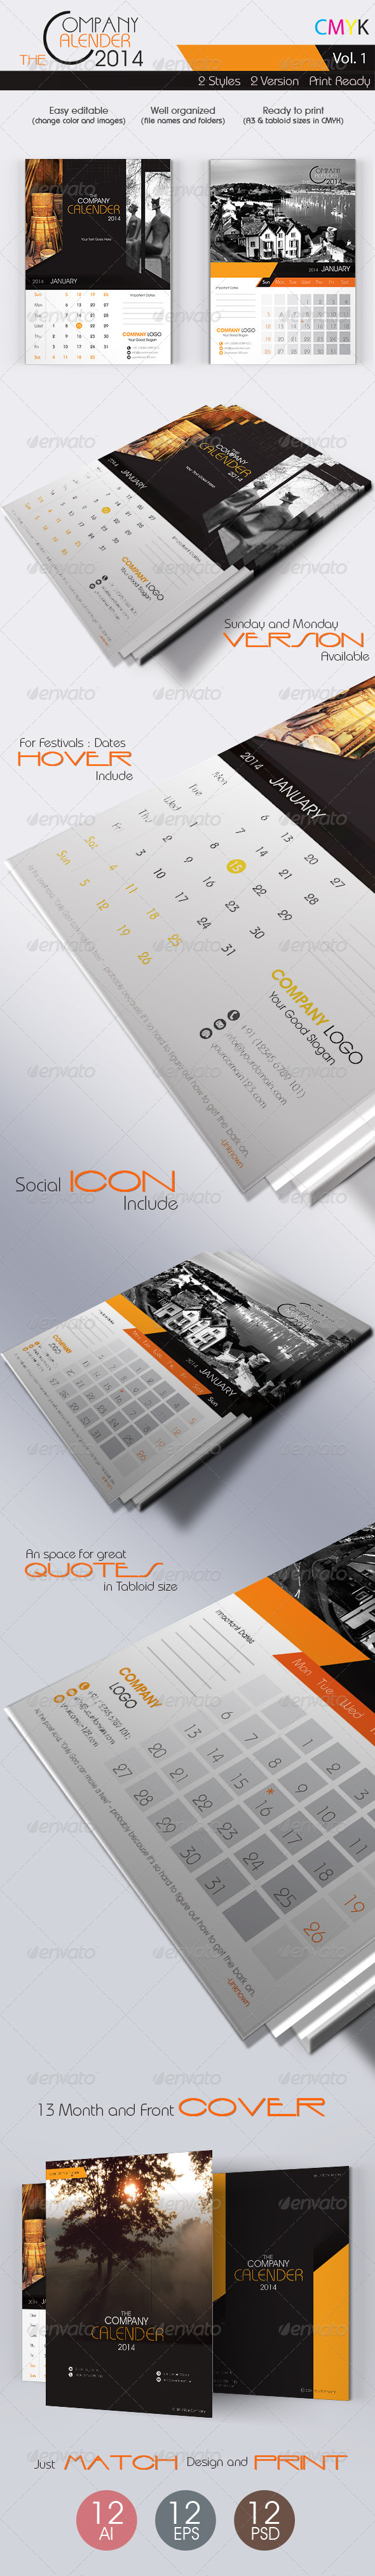 GraphicRiver The Company Calenders 2014 5725264